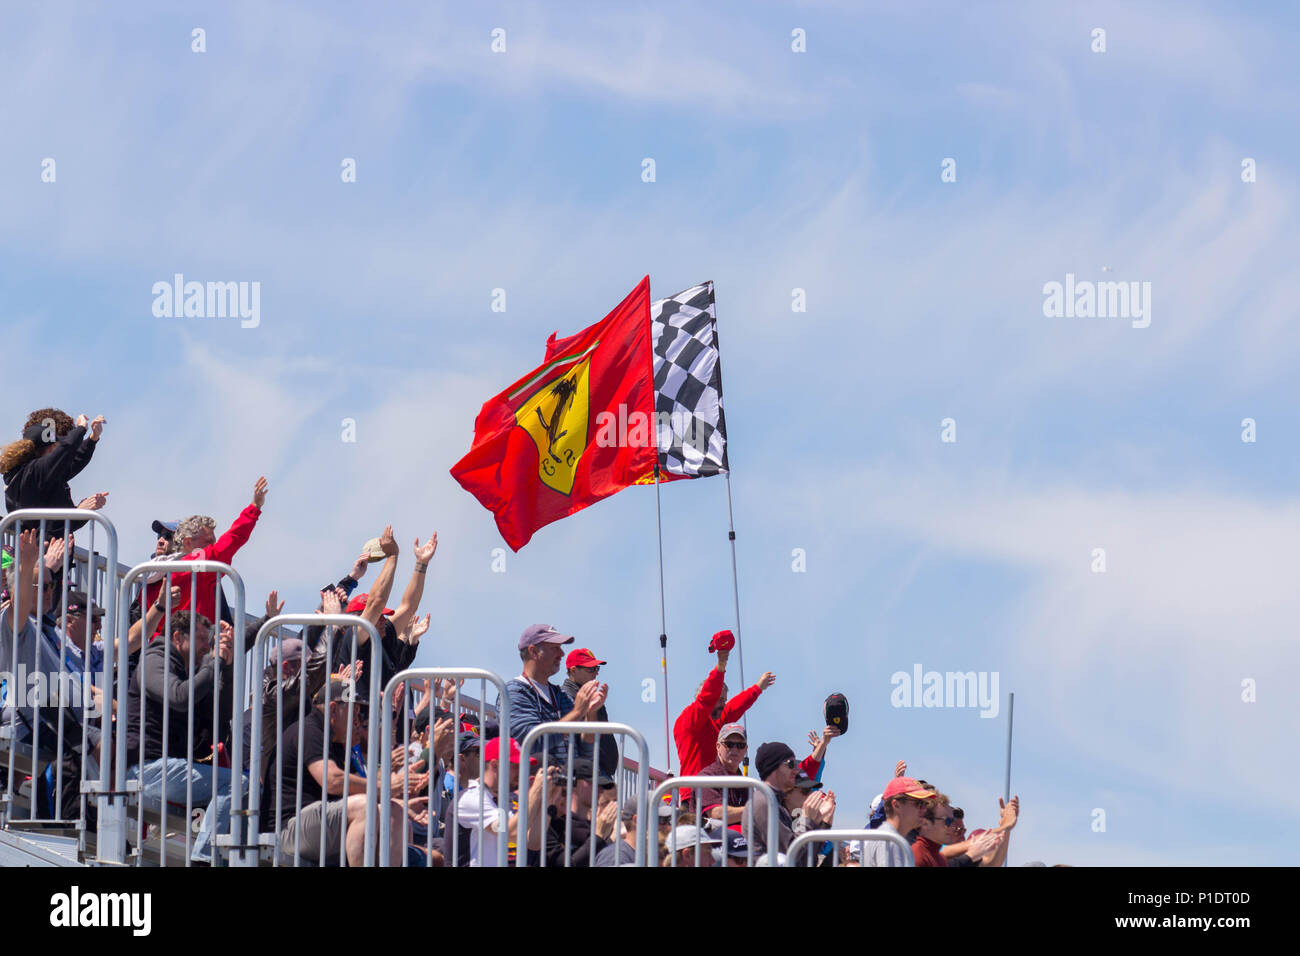 Ferrai flag at F1 race in Montreal Stock Photo